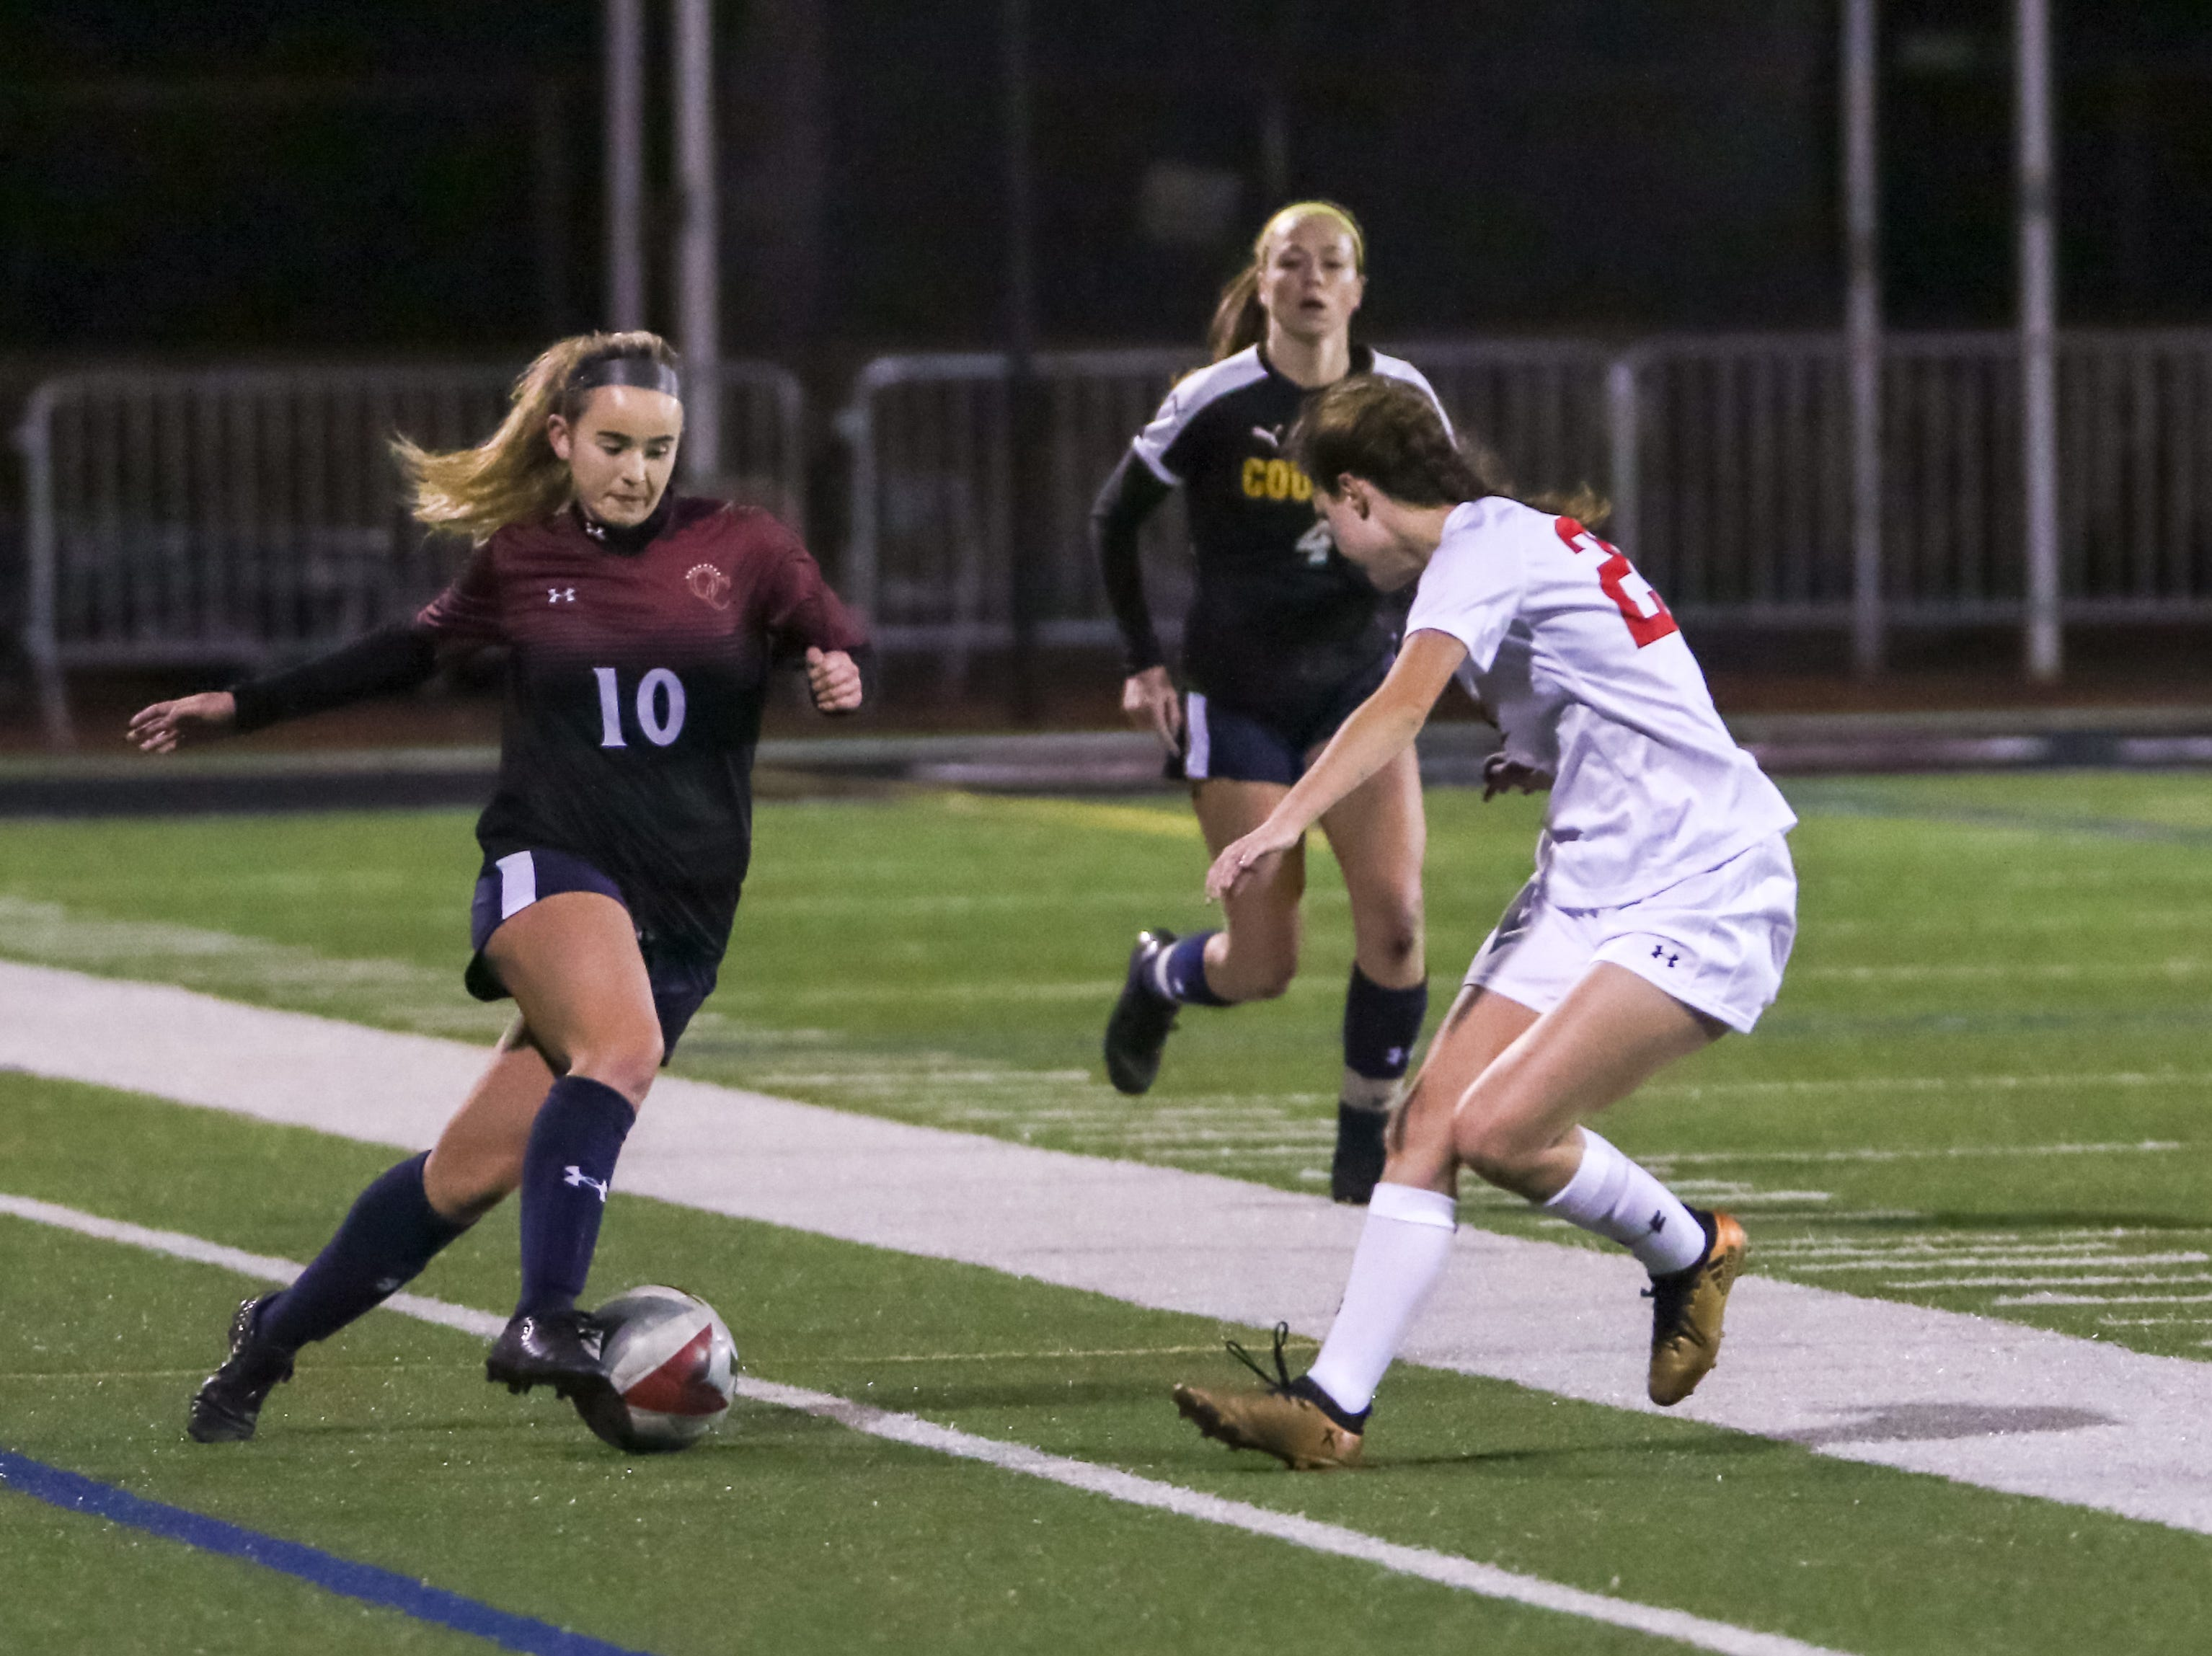 Oaks Christian's Madison Demijohn takes on an opponent during Friday night's Ventura County versus Los Angeles County Senior Girls Soccer All-Star game at Oaks Christian's Thorson Stadium. Ventura County won, 1-0.